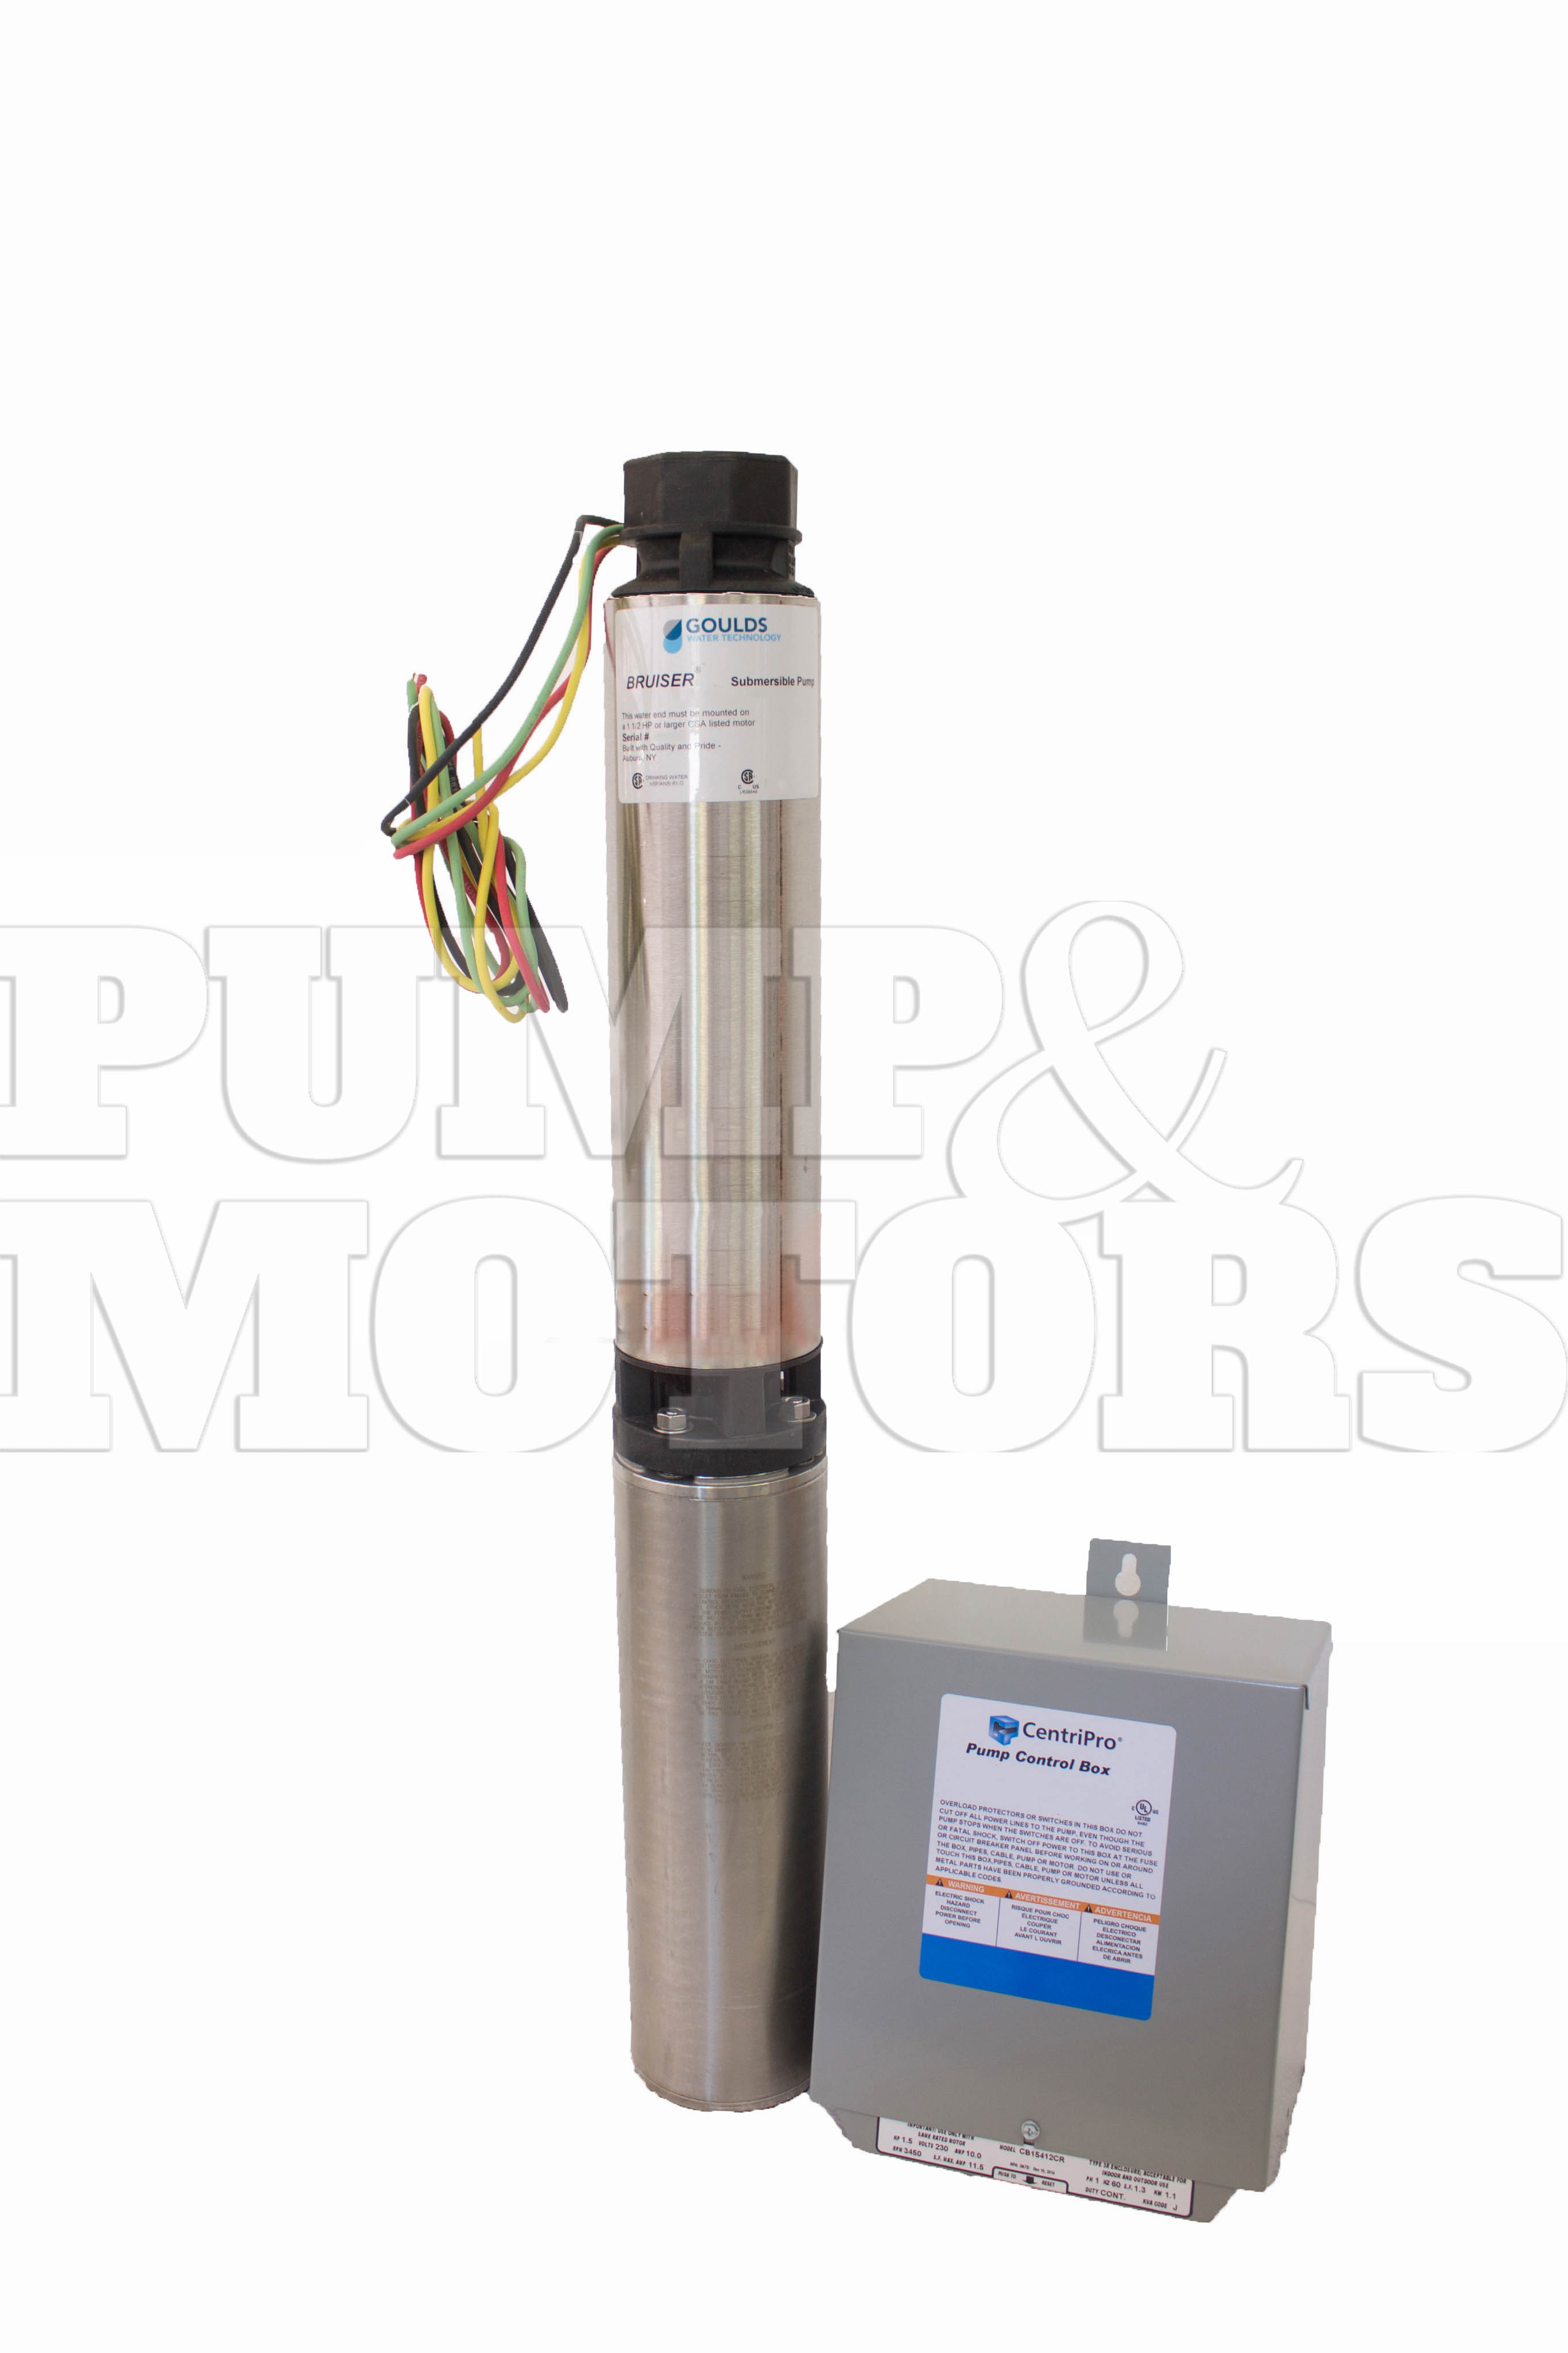 Goulds 18SB15412C 1.5 HP 230V Submersible Water Well Pump 18GPM